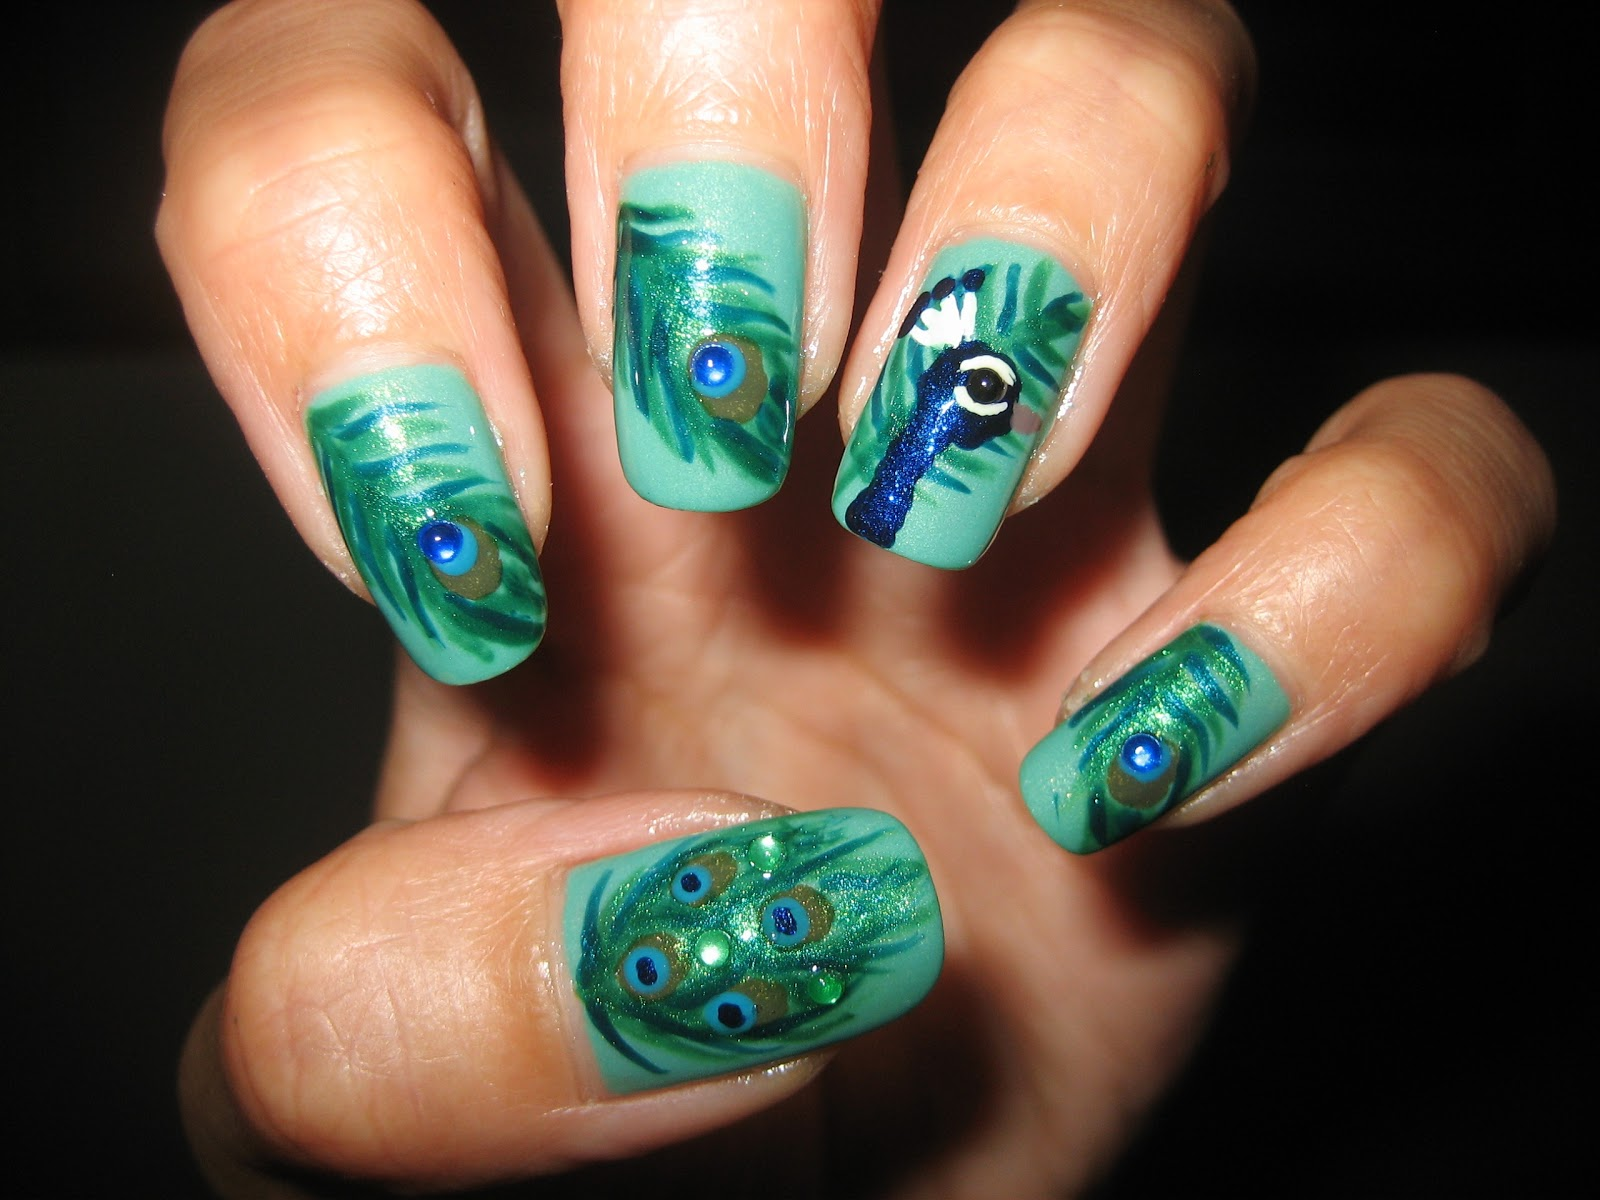 Awesome nails by nicole my most awesome design yet i will list my materials used below but here is the link for the tutorial peacock nail art tutorial prinsesfo Choice Image